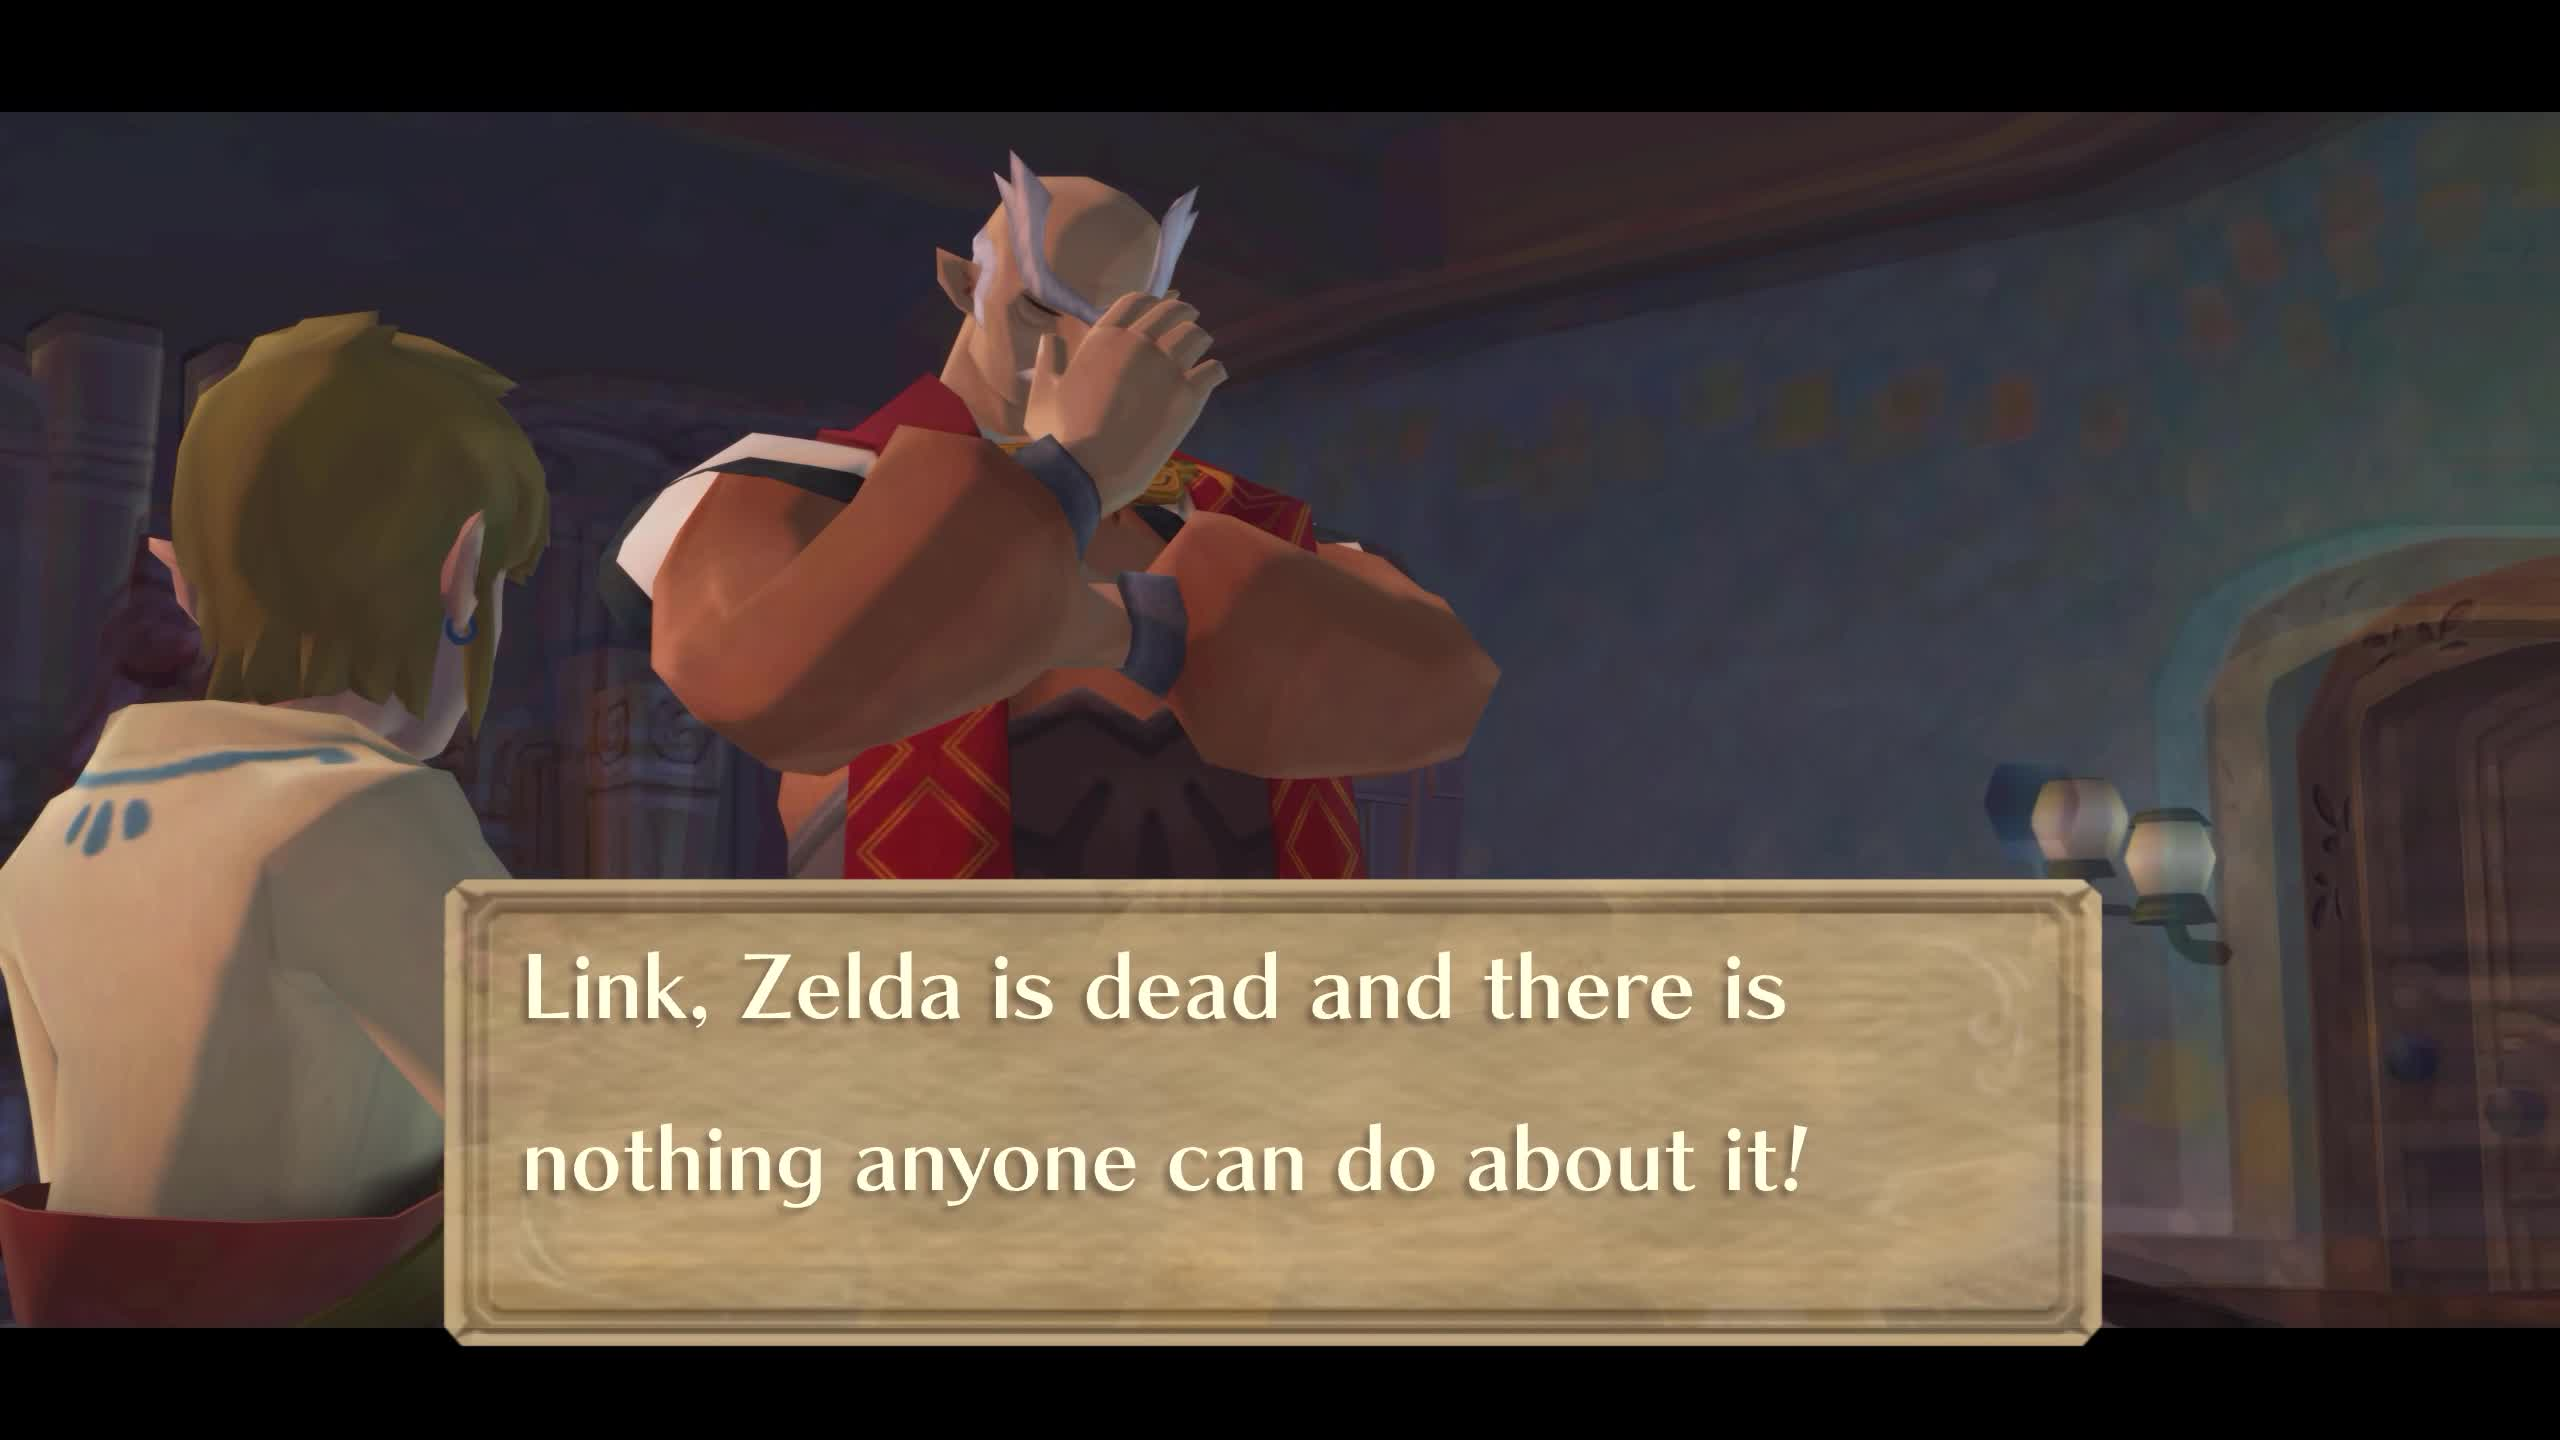 Link, Zelda is dead and there is nothing anyone can do about it! GIFs